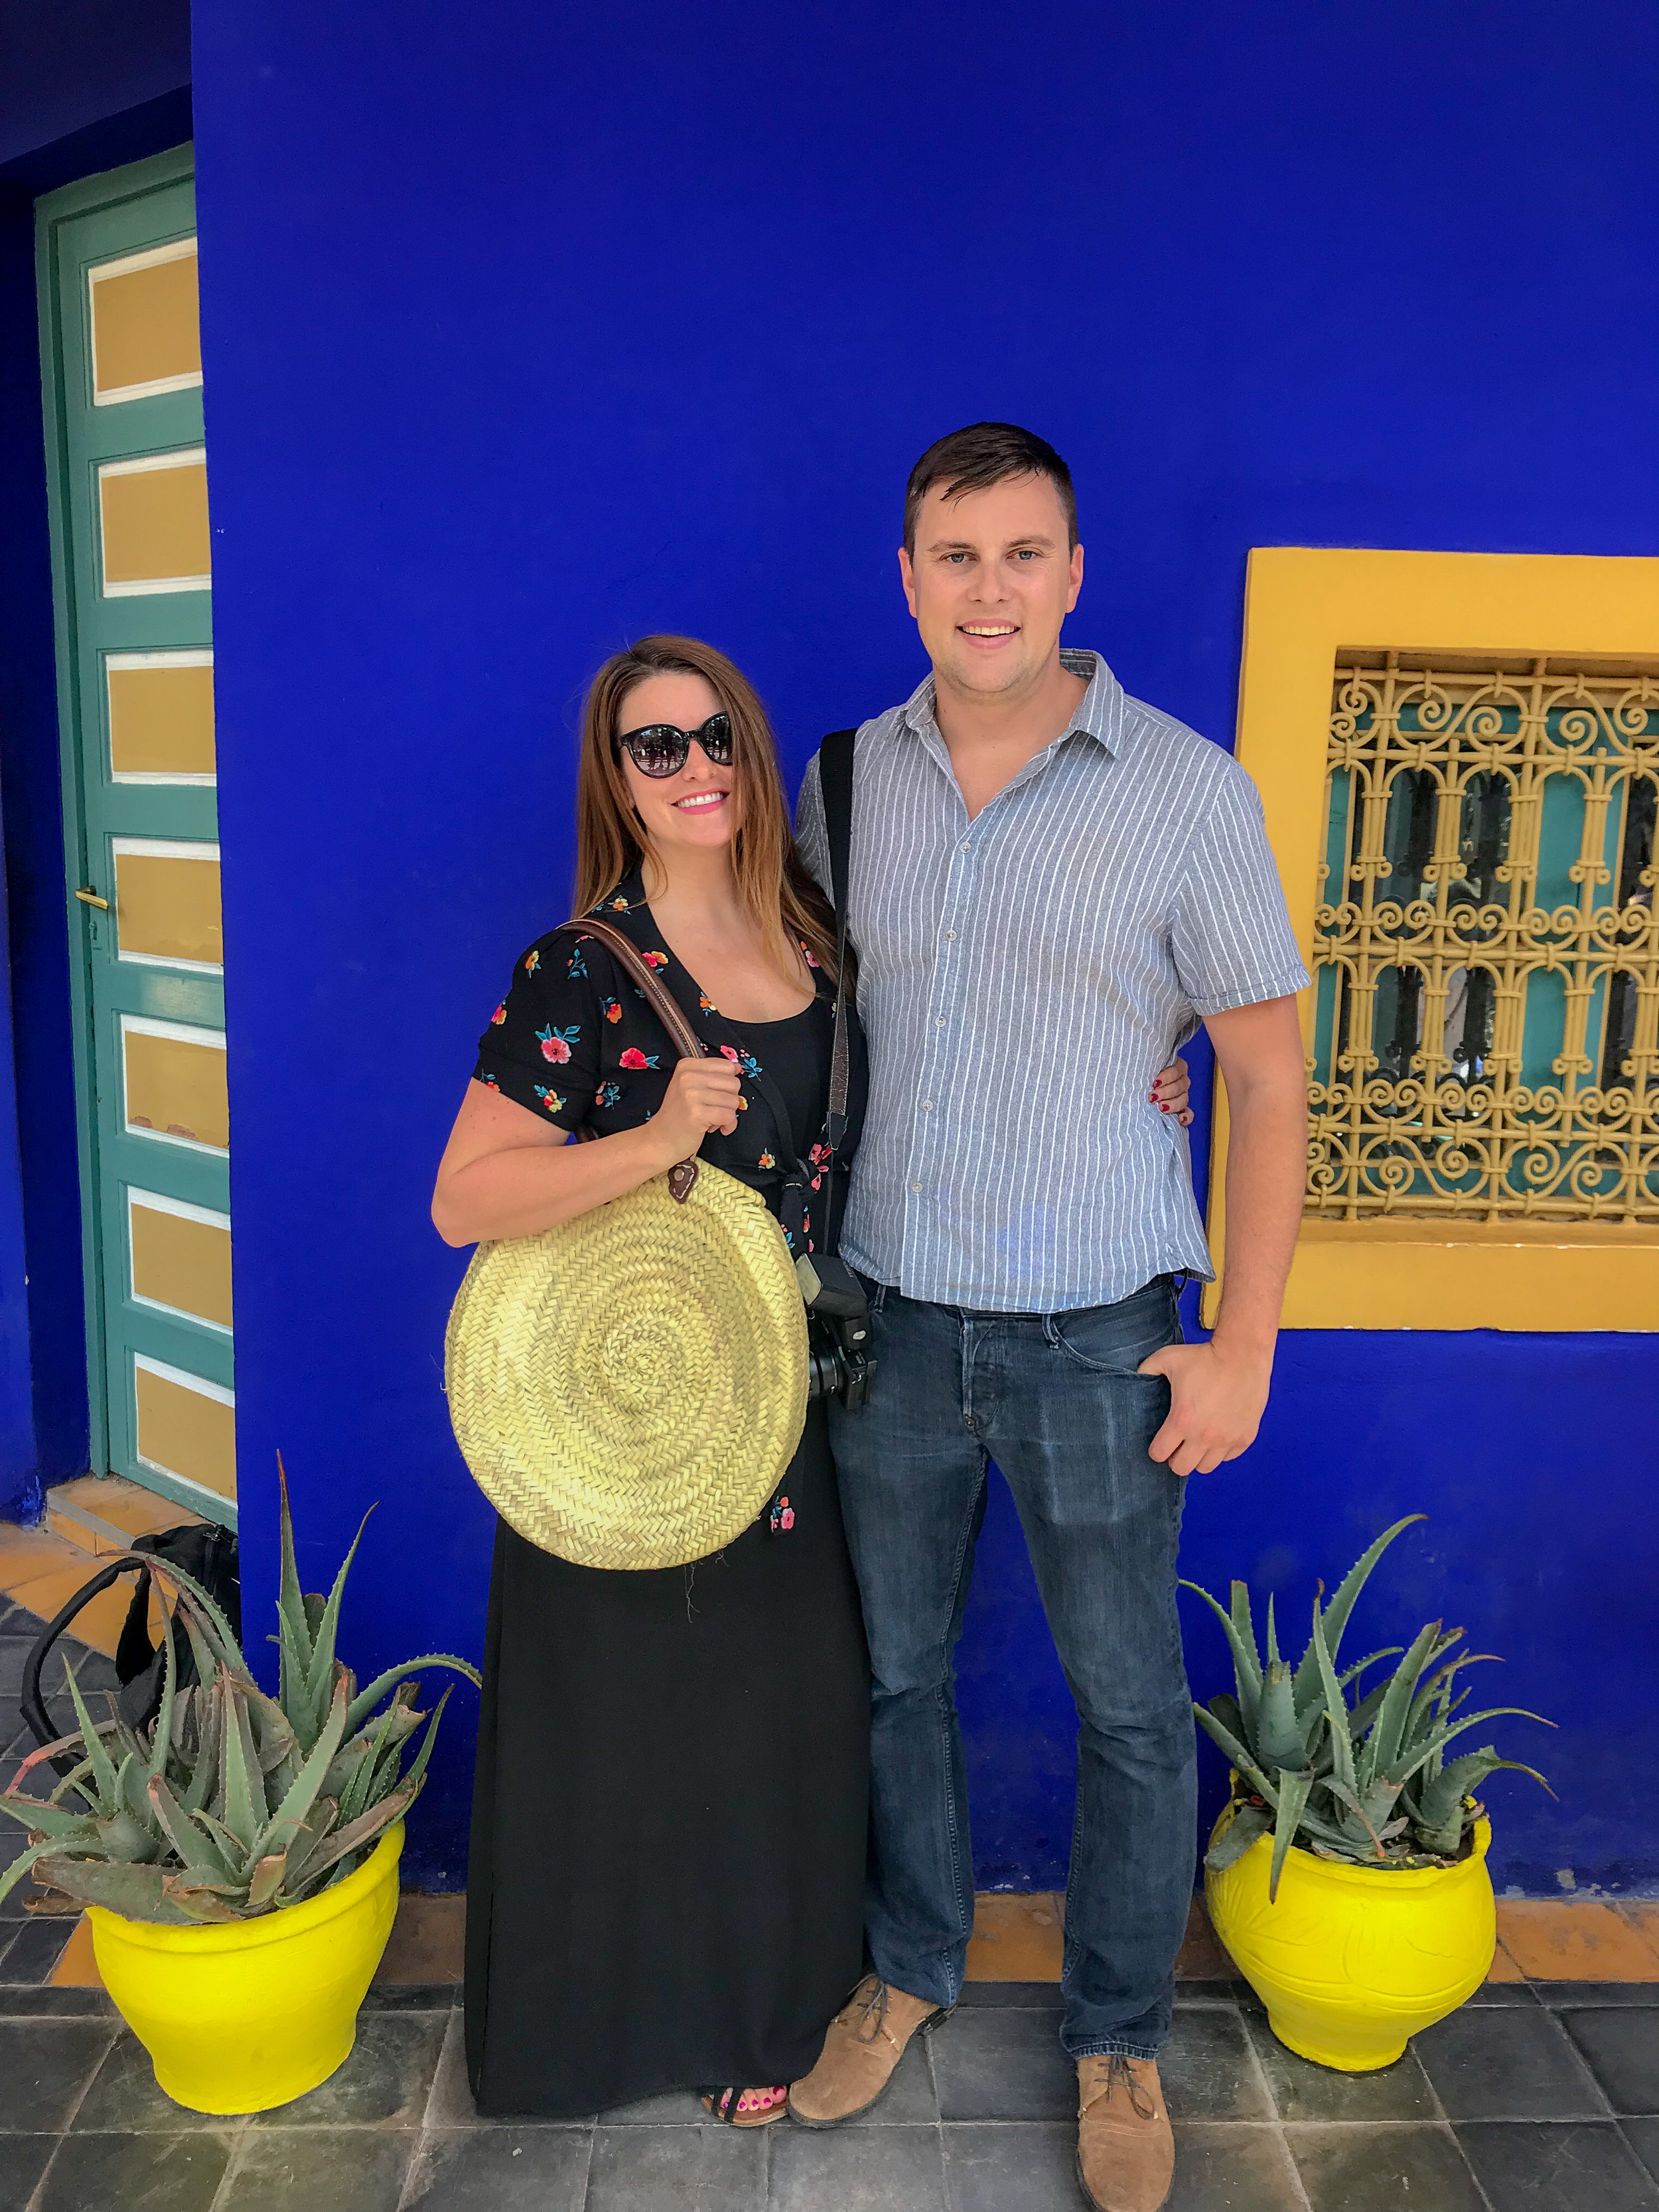 Morocco Shopping, How to get the Best Deal on Moroccan Souvenirs | coupleinthekitchen.com